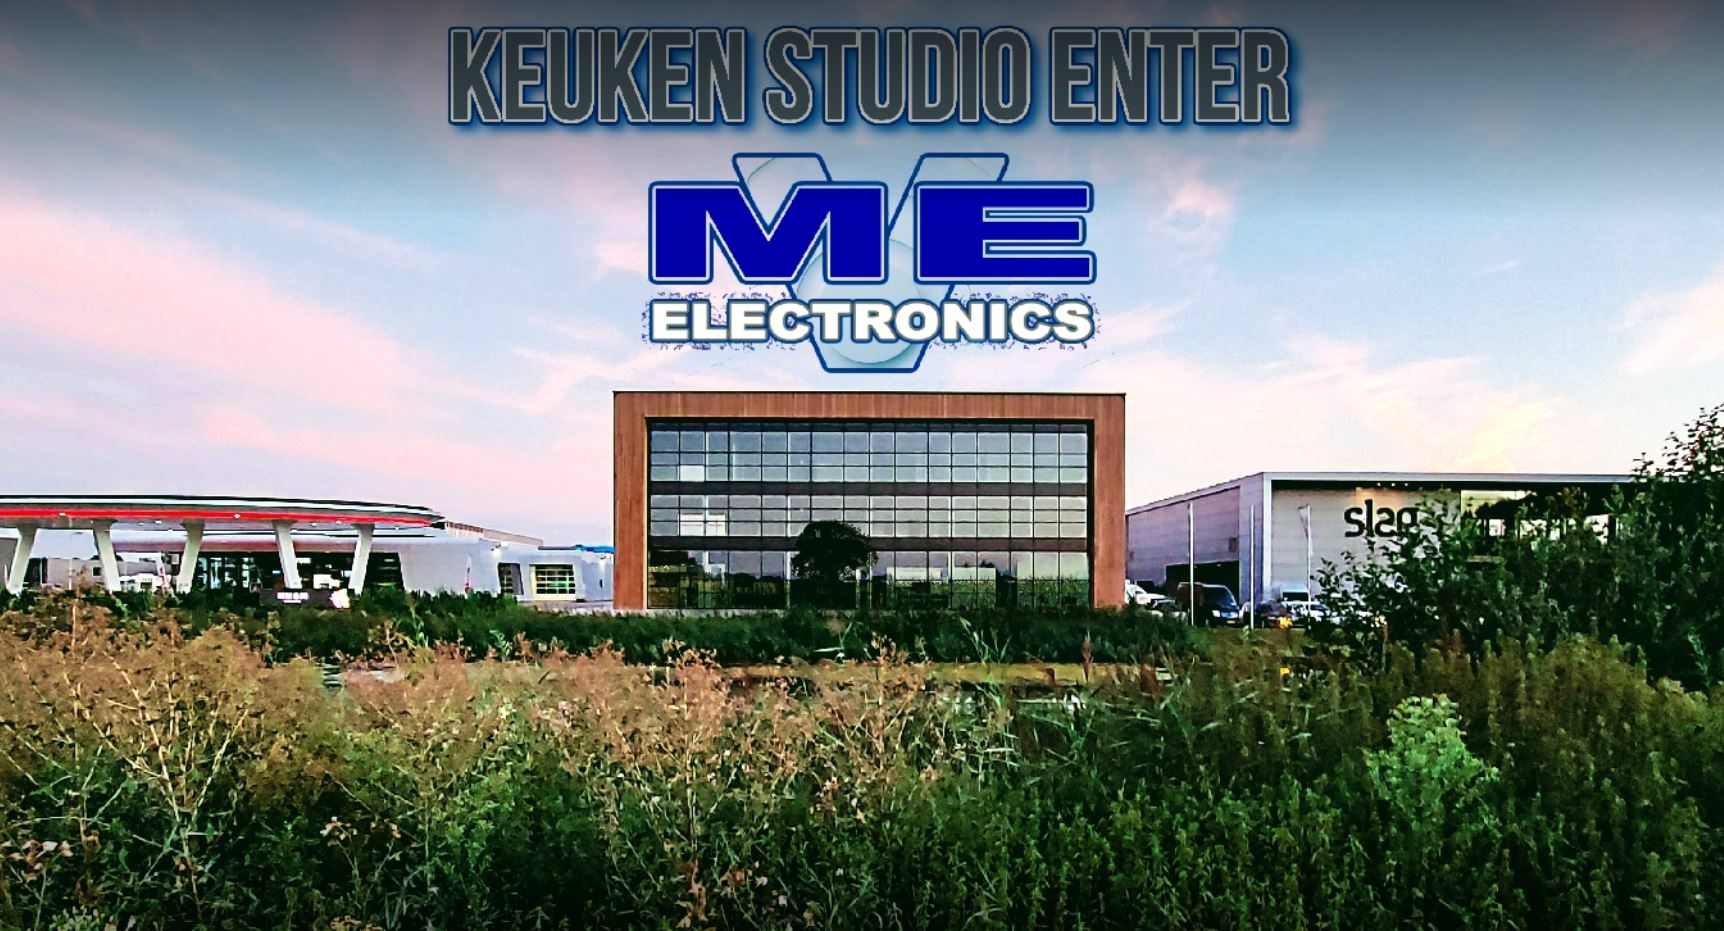 Keuken studio Enter